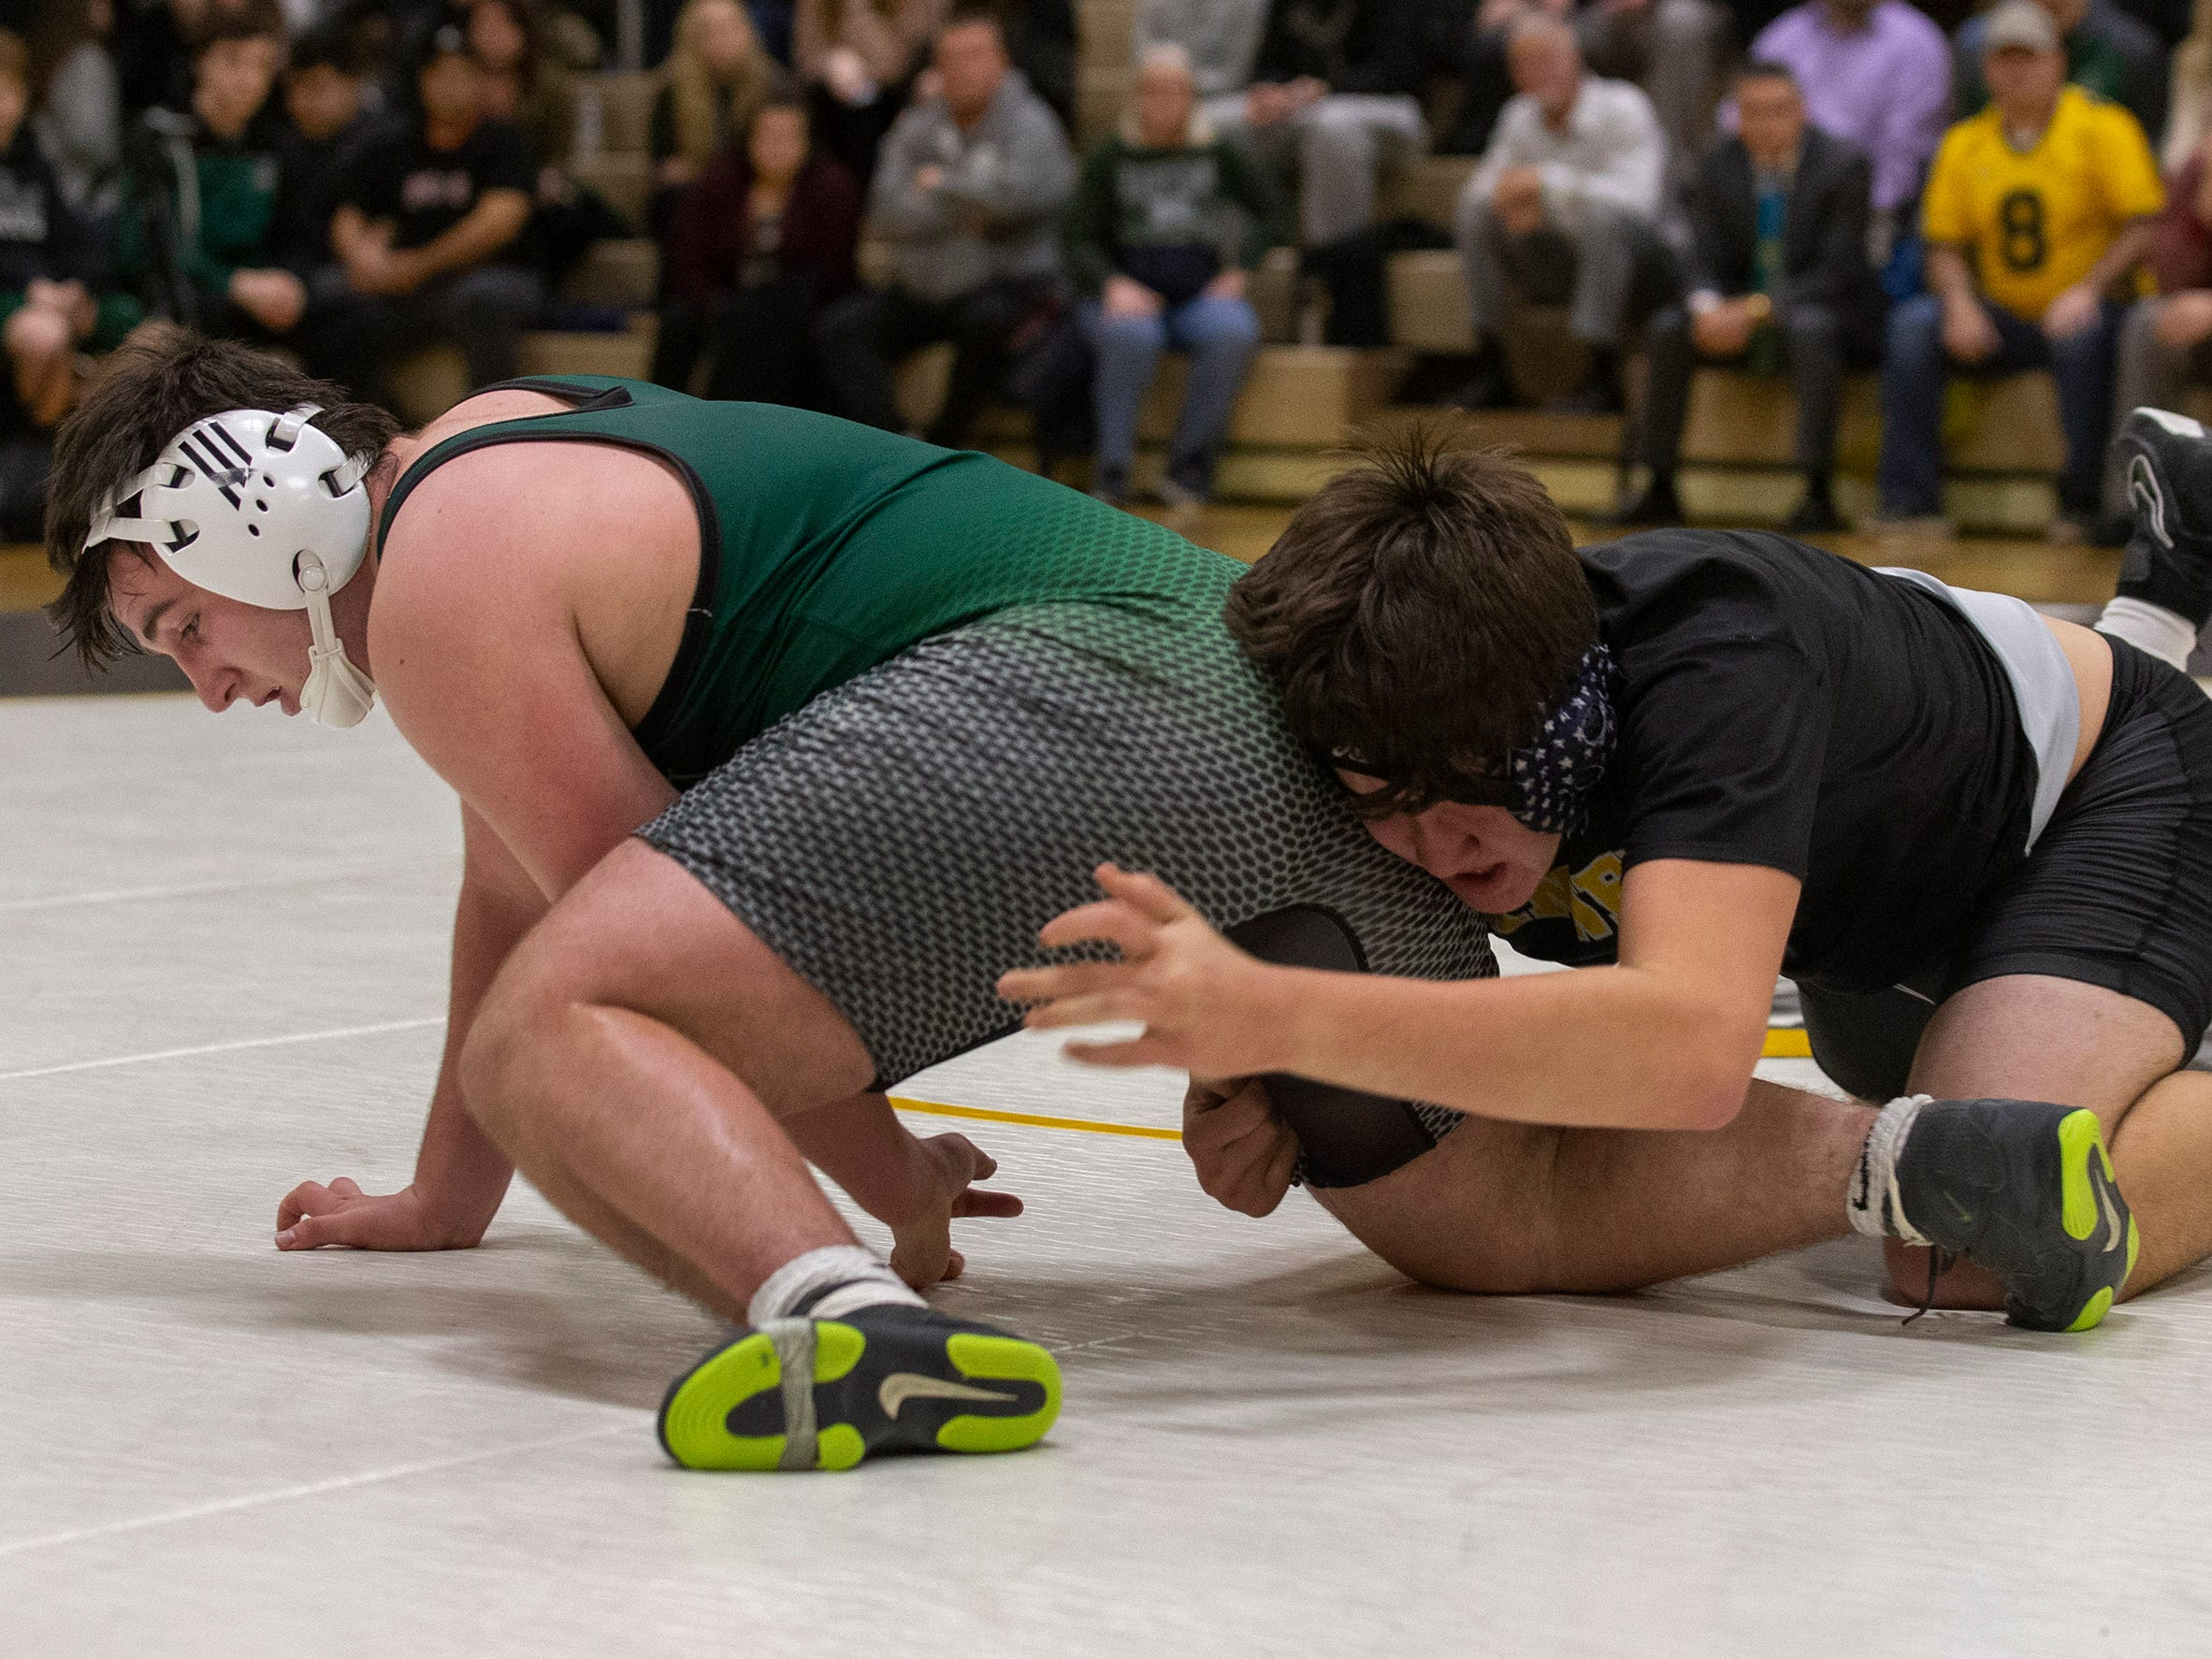 Raritan's Charles Barrale vs Dante Miranda in their 195 lbs. out as Raritan Wrestling defeats St John Vianney in Holmdel, NJ on January 23, 2019.